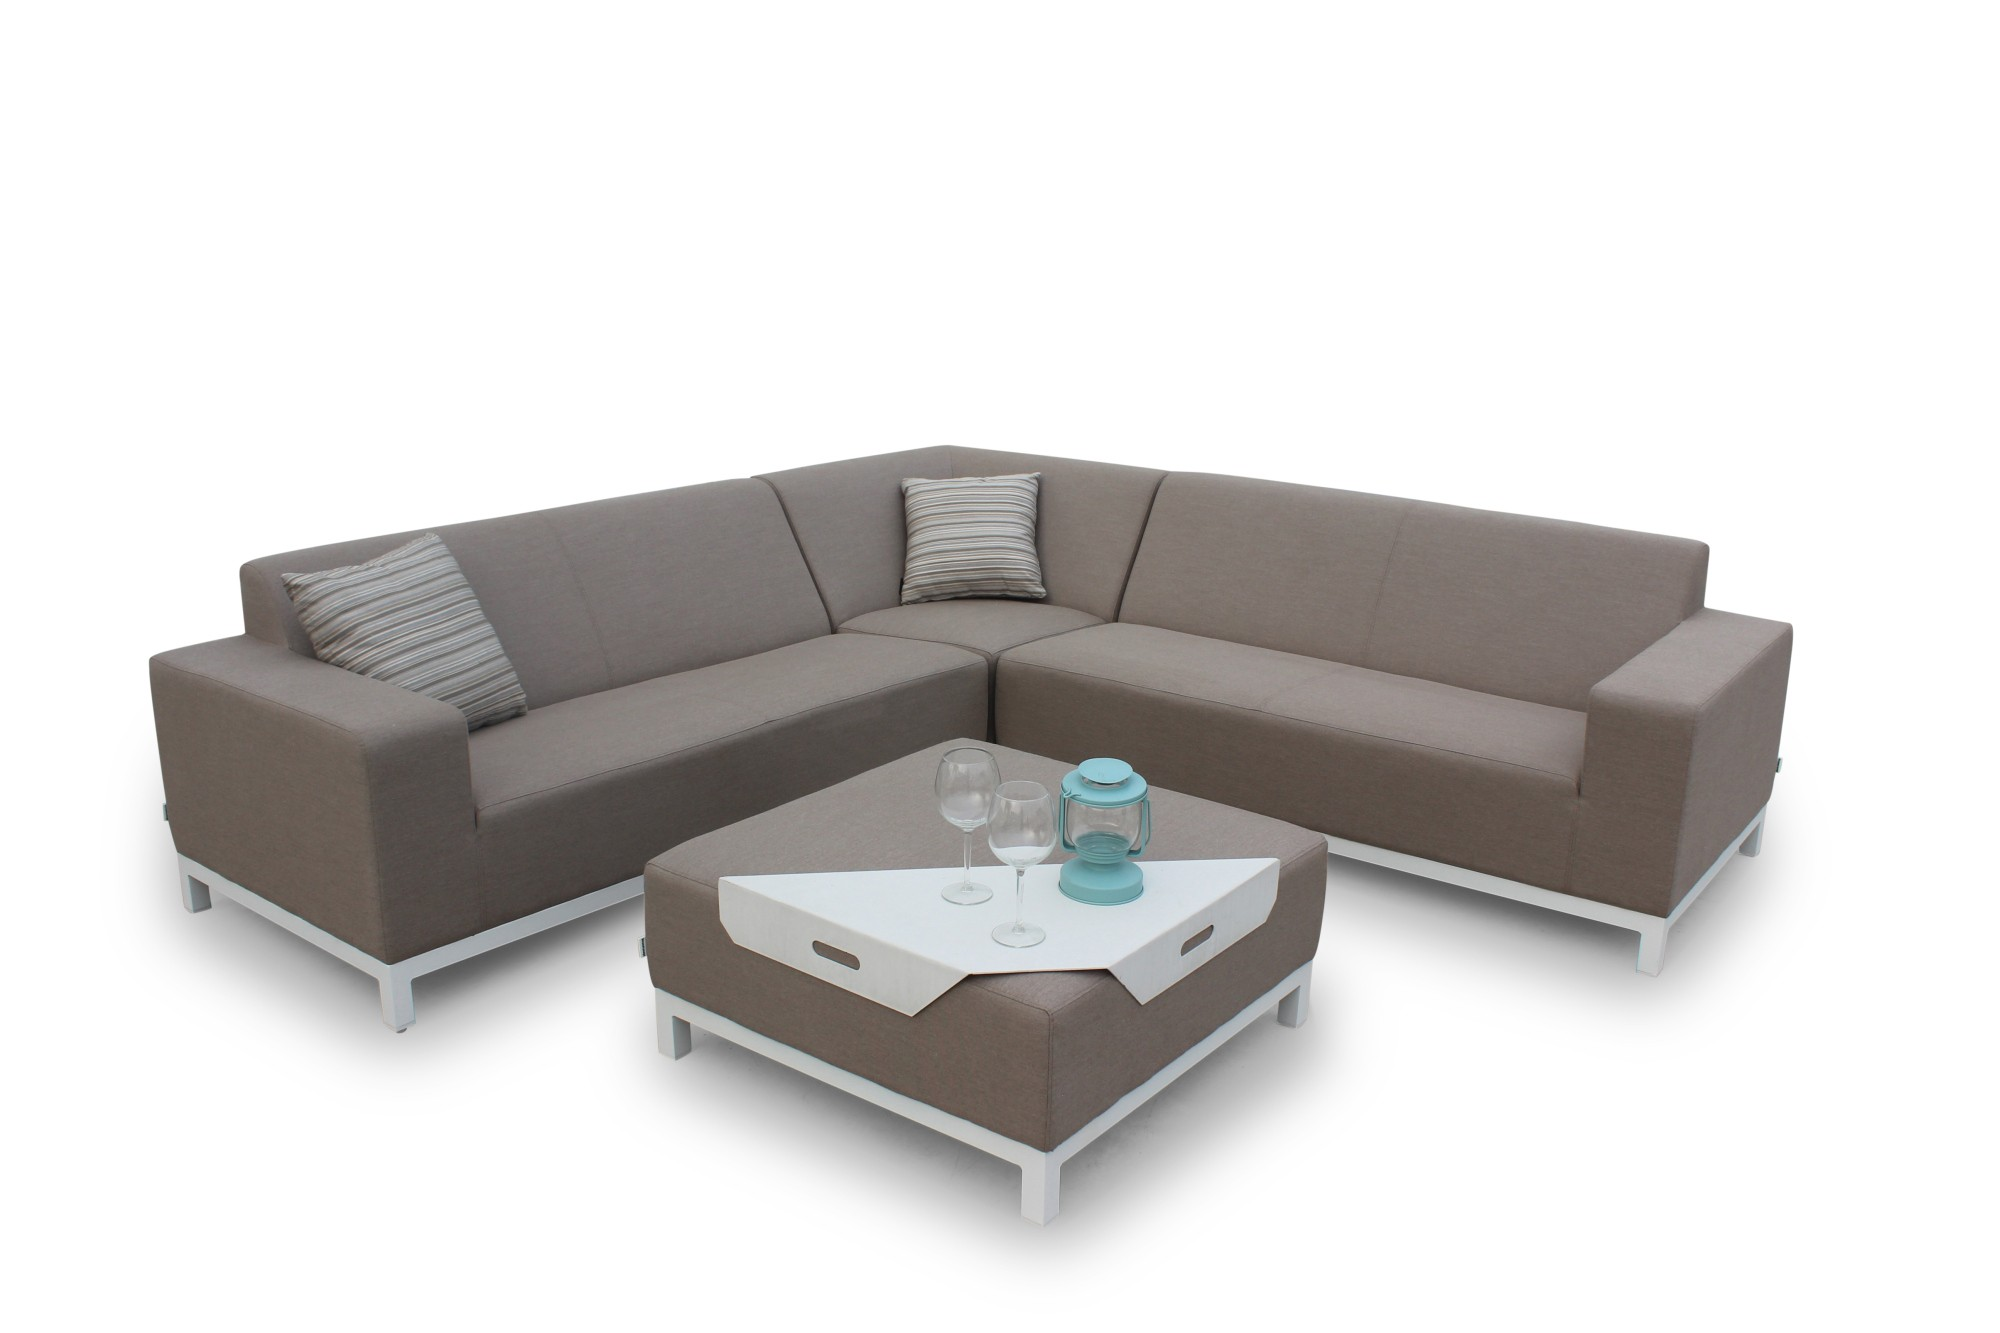 https://www.firstfurniture.co.uk/pub/media/catalog/product/m/a/maze_devane_small_corner_group_taupe.jpg